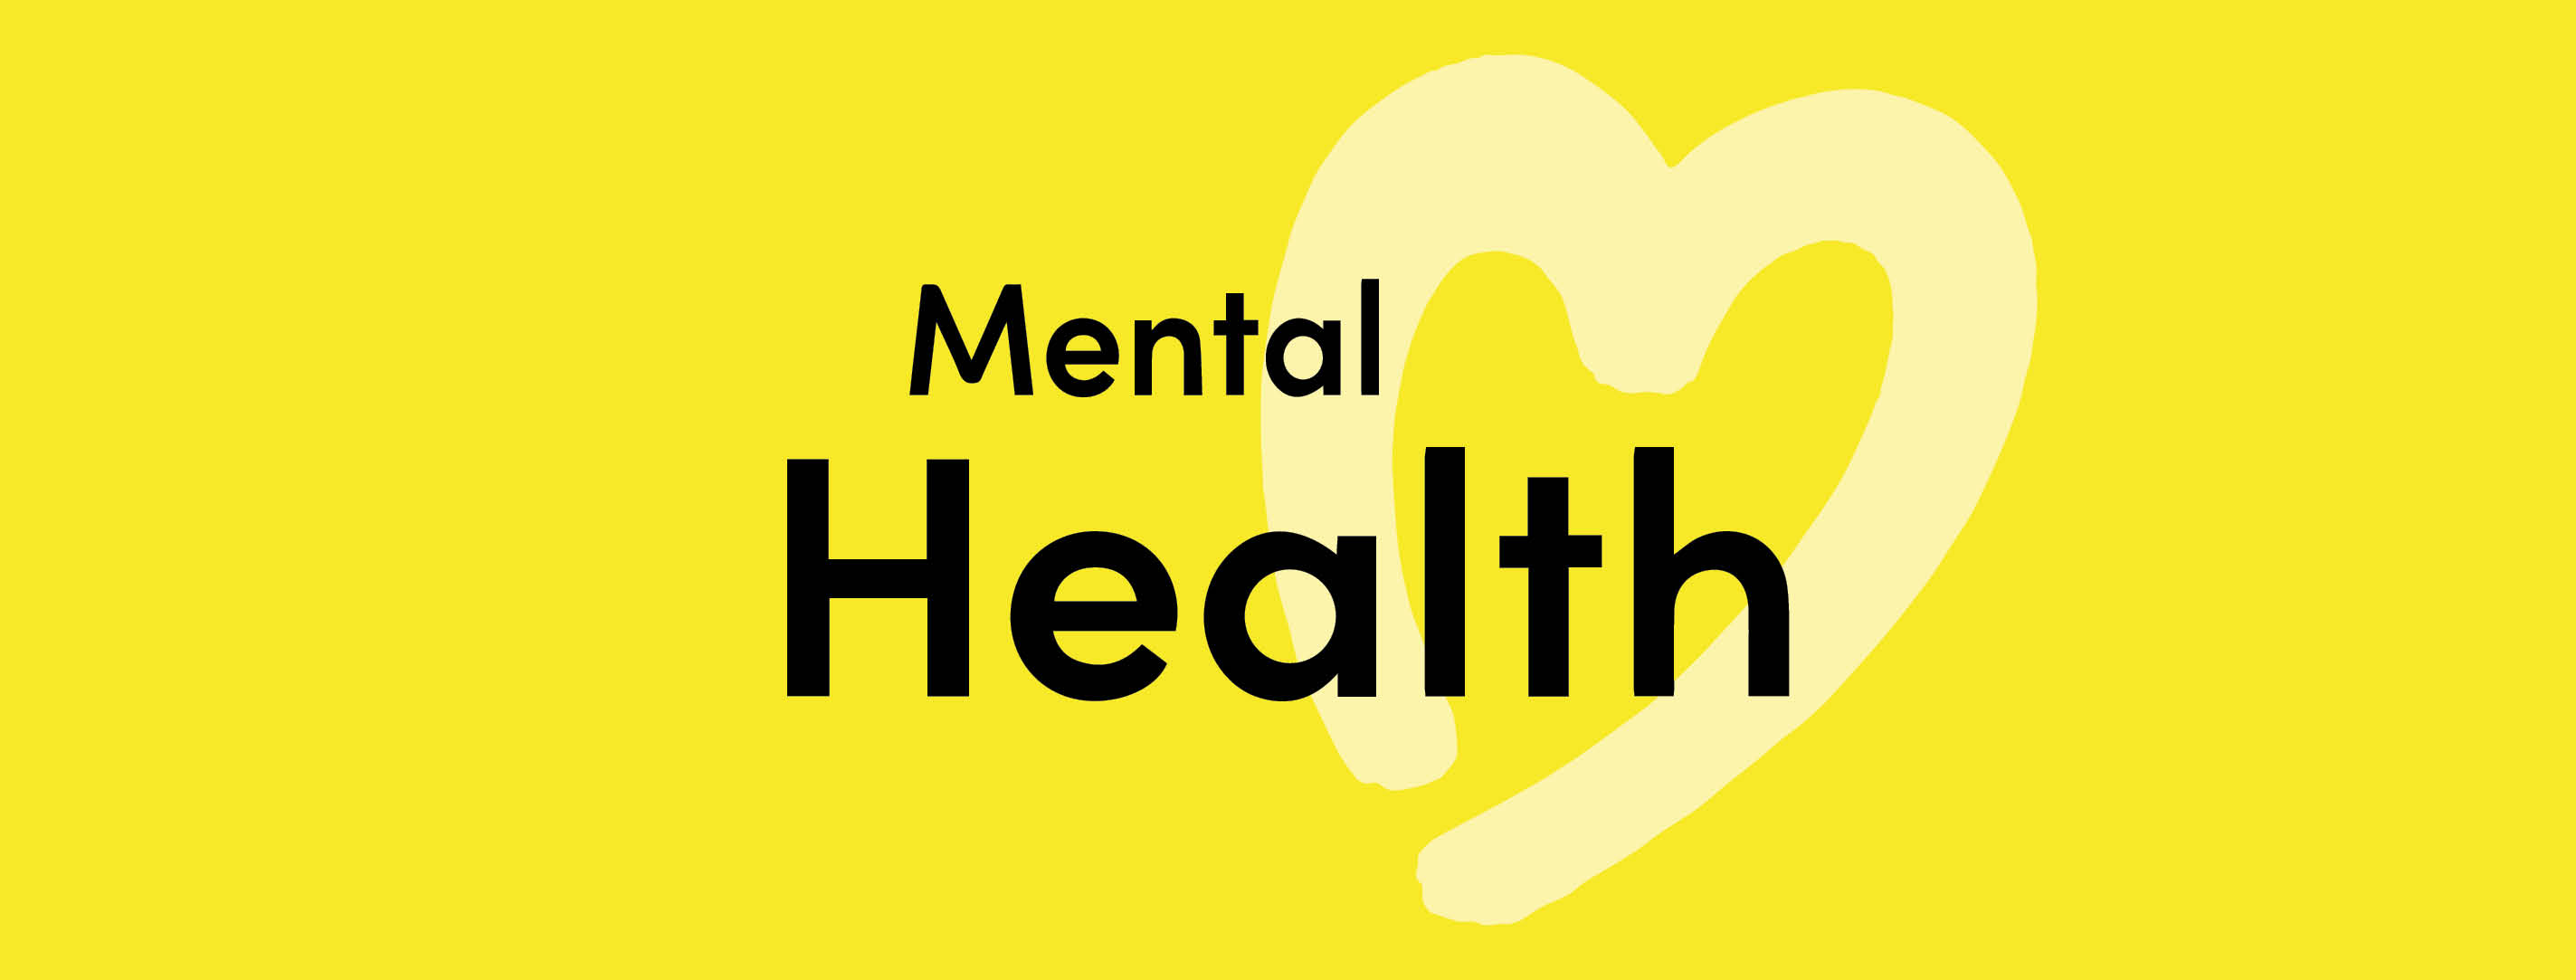 Health & Welfare - Mental Health